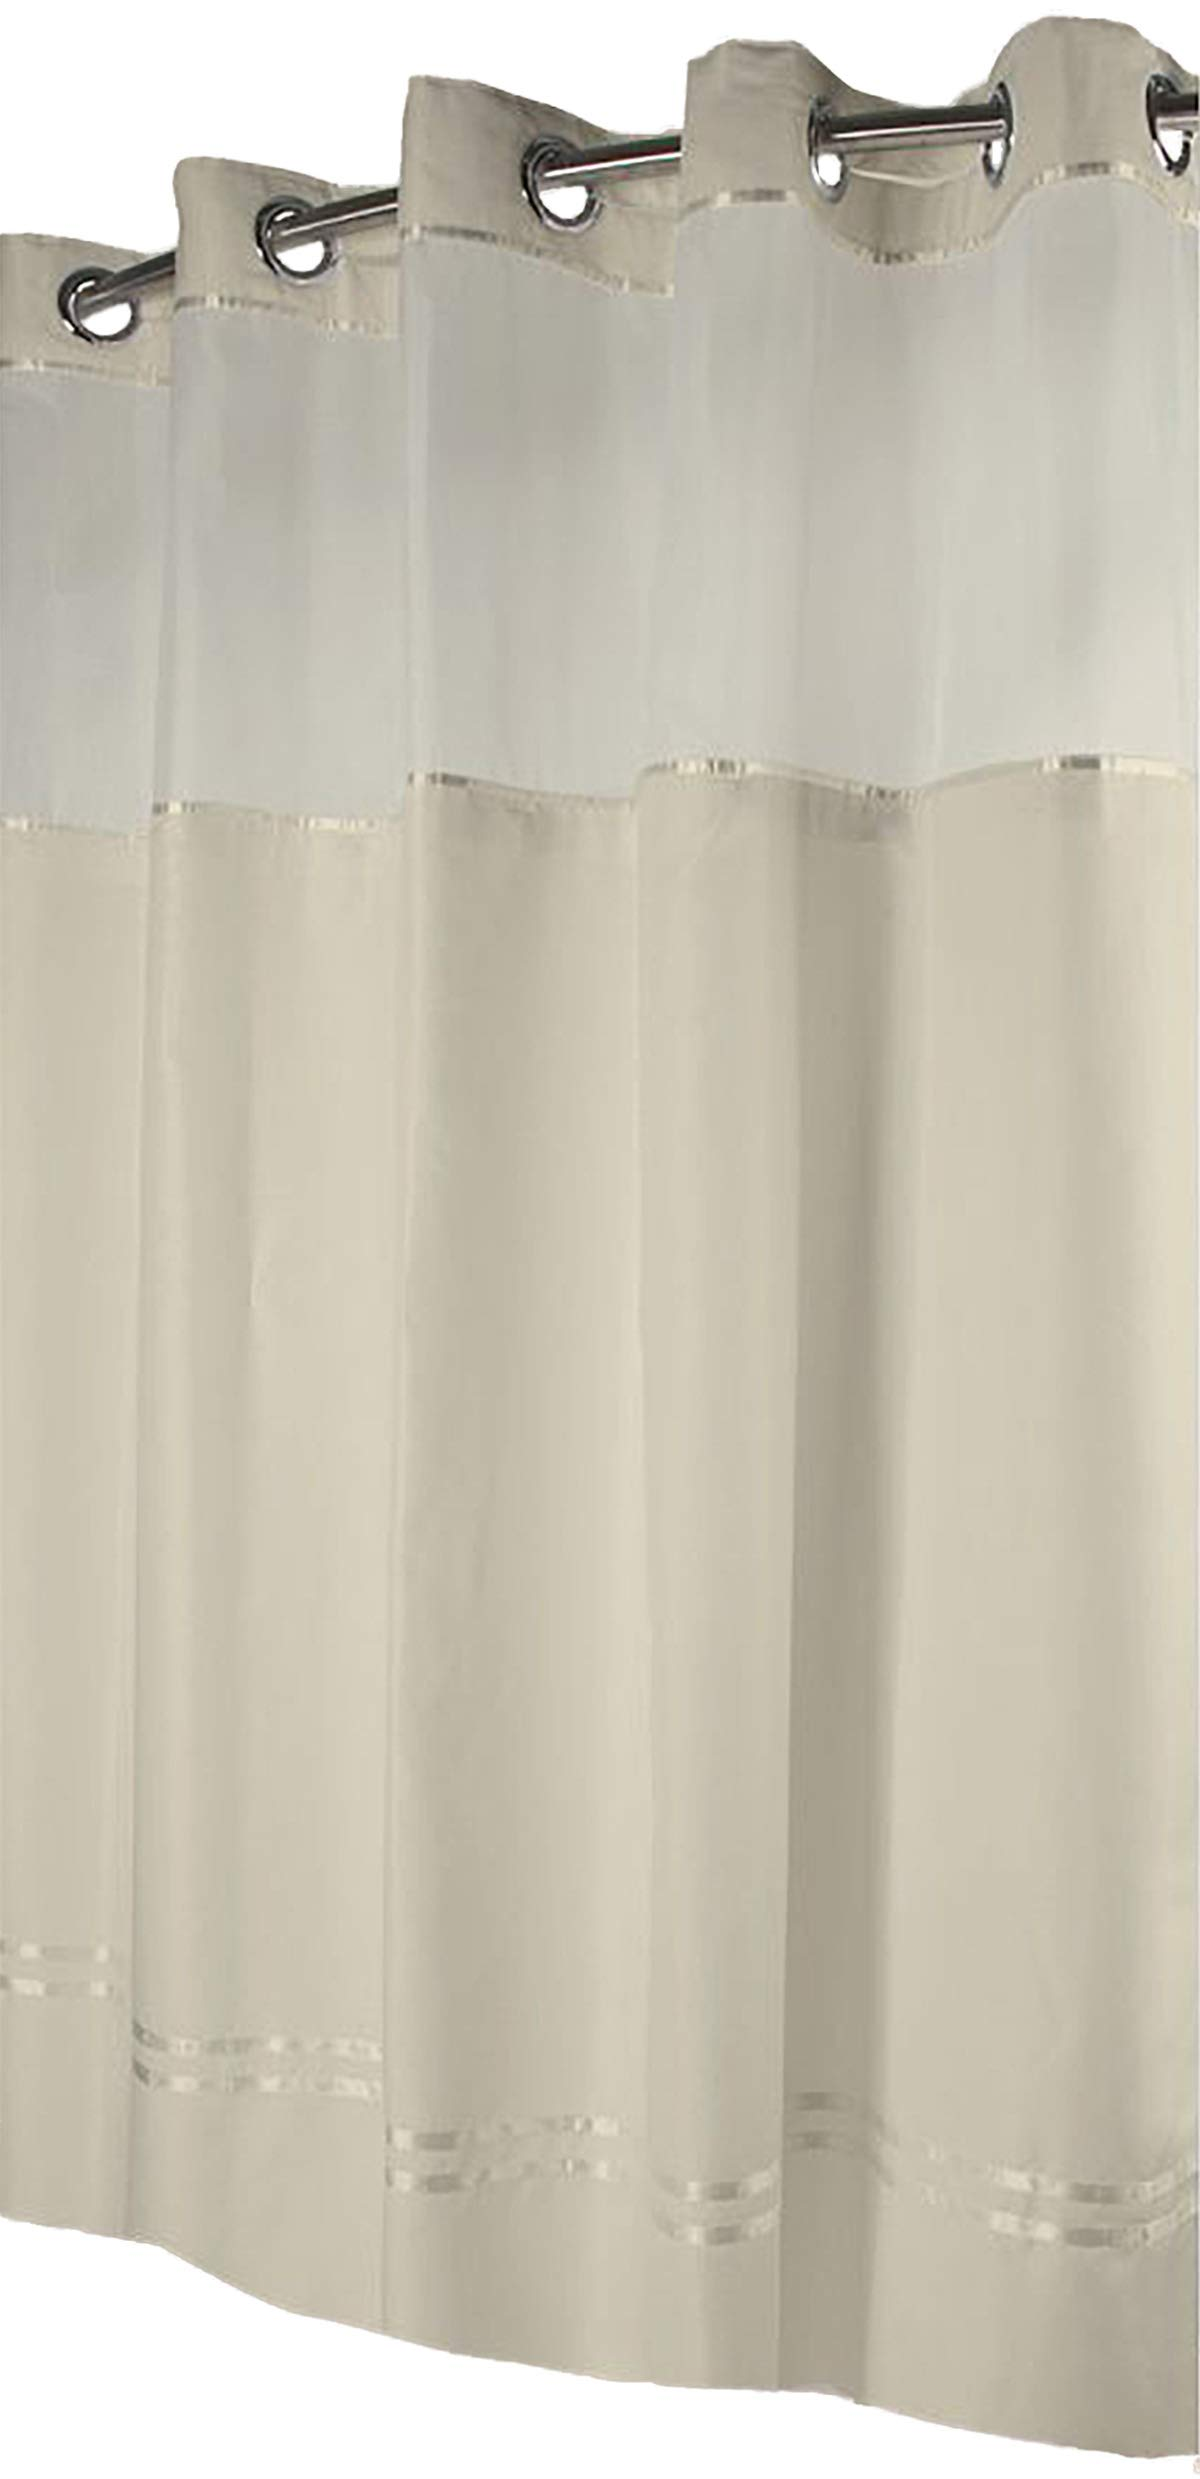 Hookless Monterey Hotel Quality Shower Curtain with Snap in Liner - Beige with Beige Stripe, 71 IN. X 77 IN.